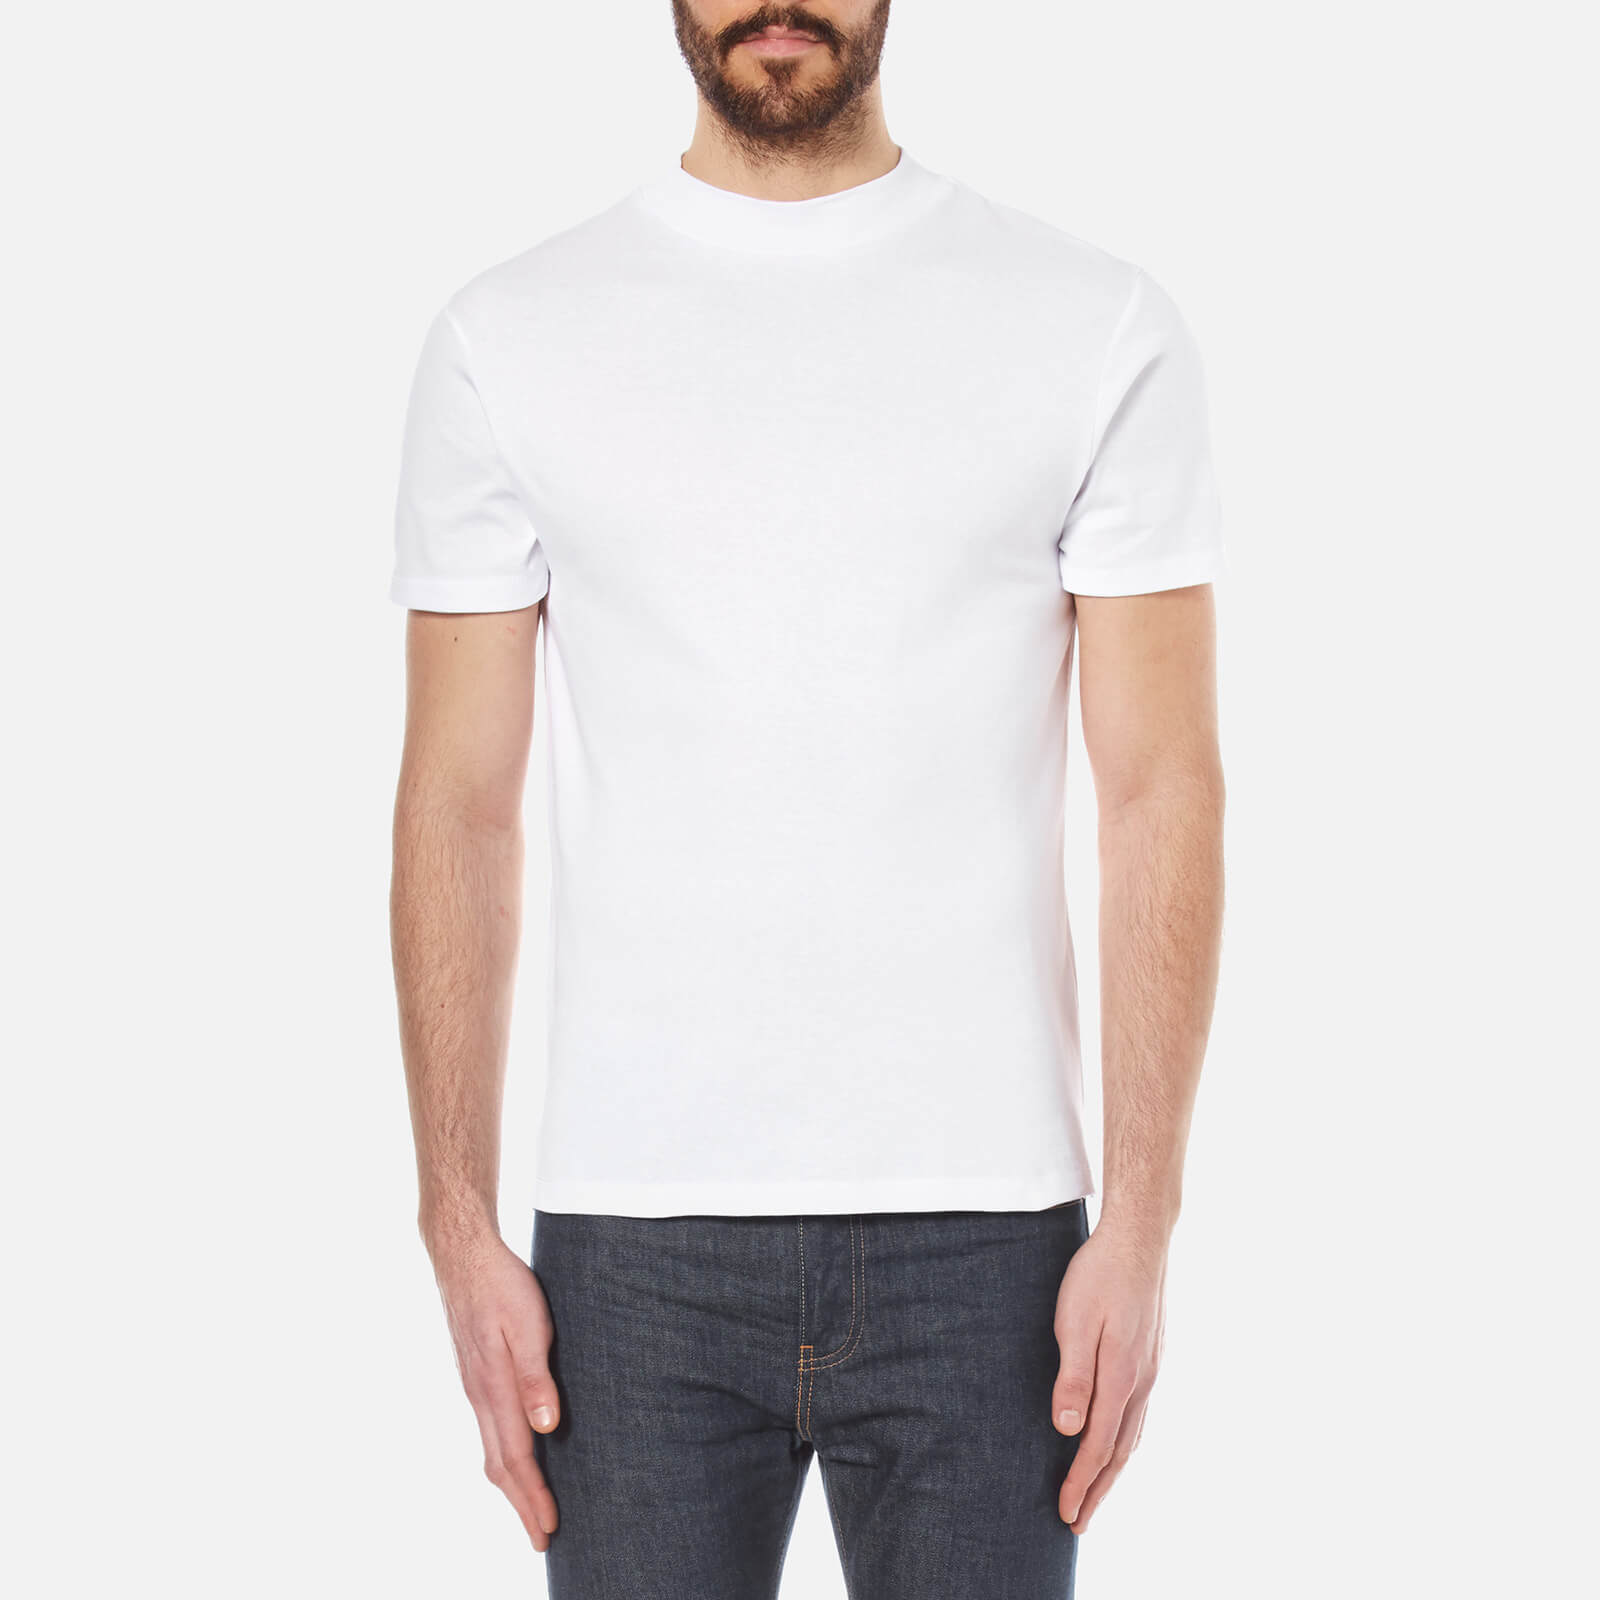 4036ecbd349110 Selected Homme Men's High Neck T-Shirt - Bright White Clothing | TheHut.com